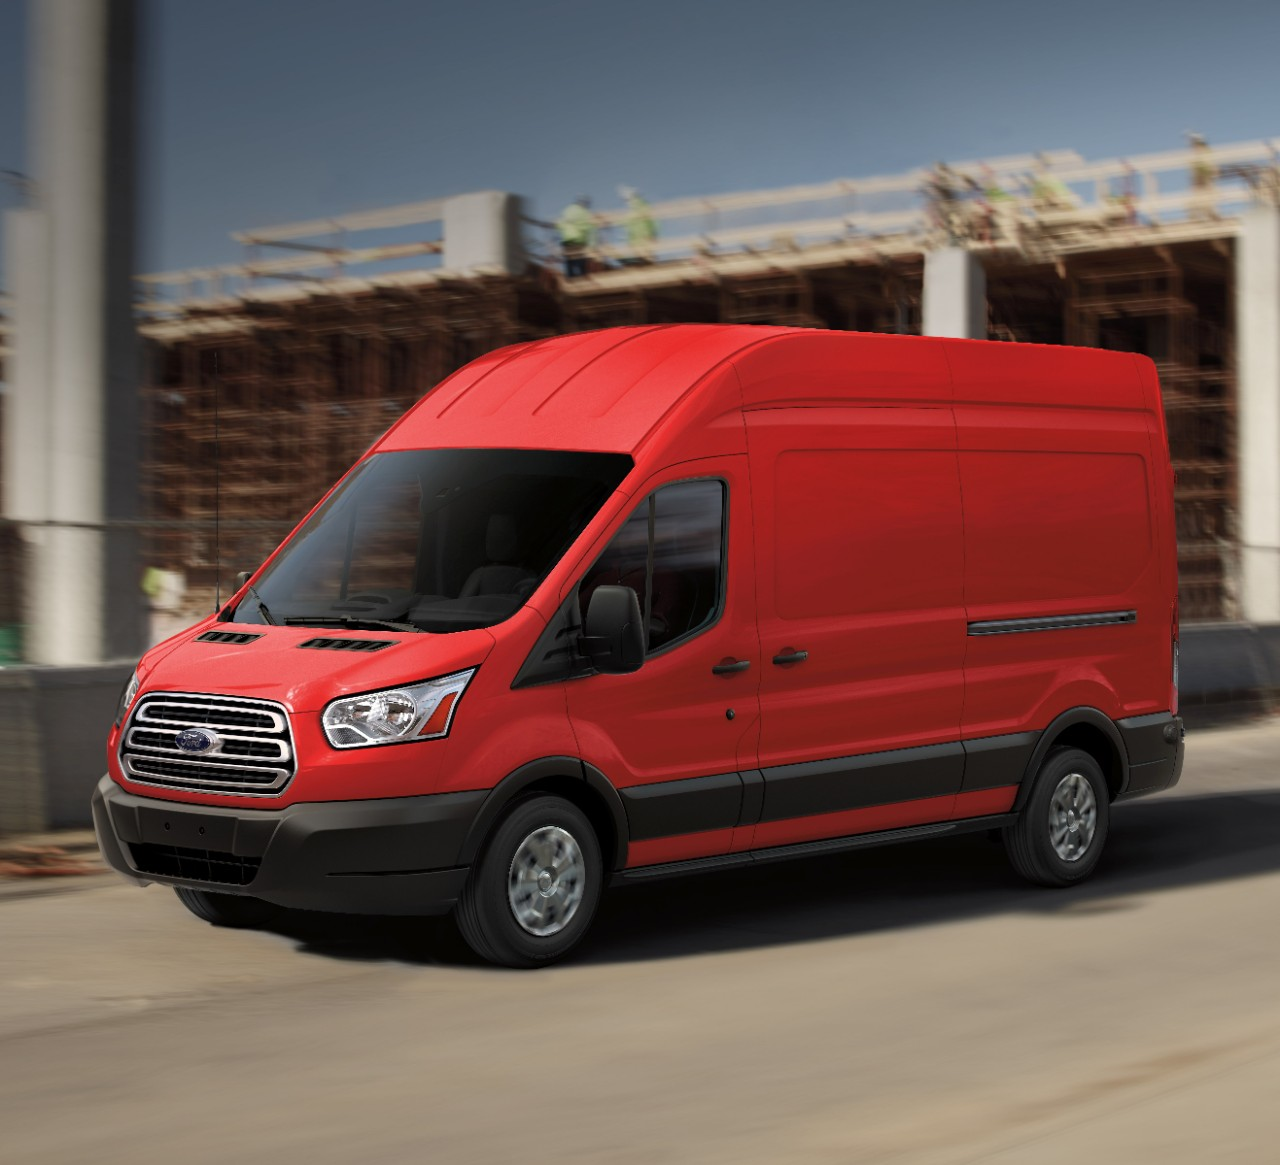 2018 Ford Transit Wagon Review, Ratings, Specs, Prices, and Photos - The Car Connection